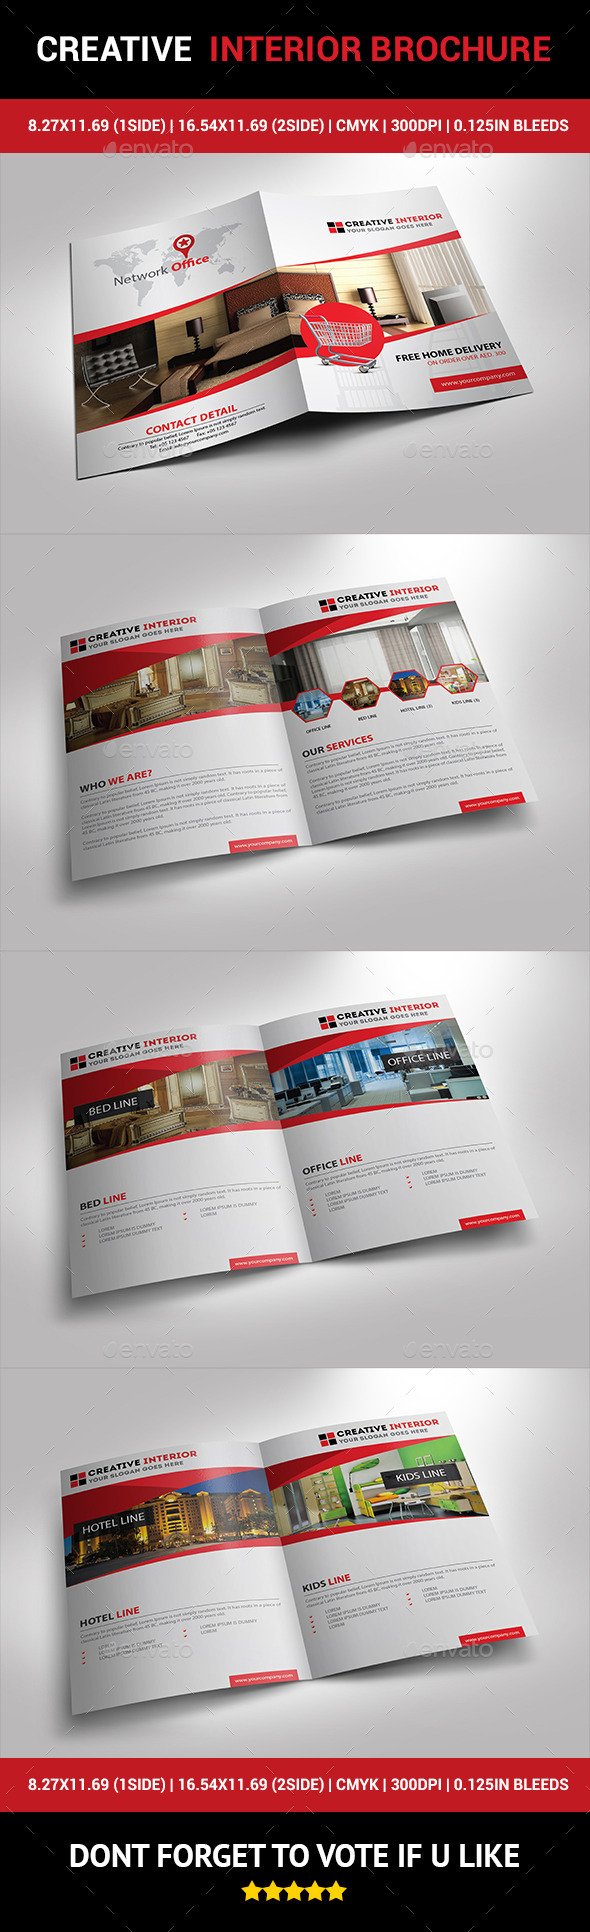 GraphicRiver Creative Interior Brochure 9944567